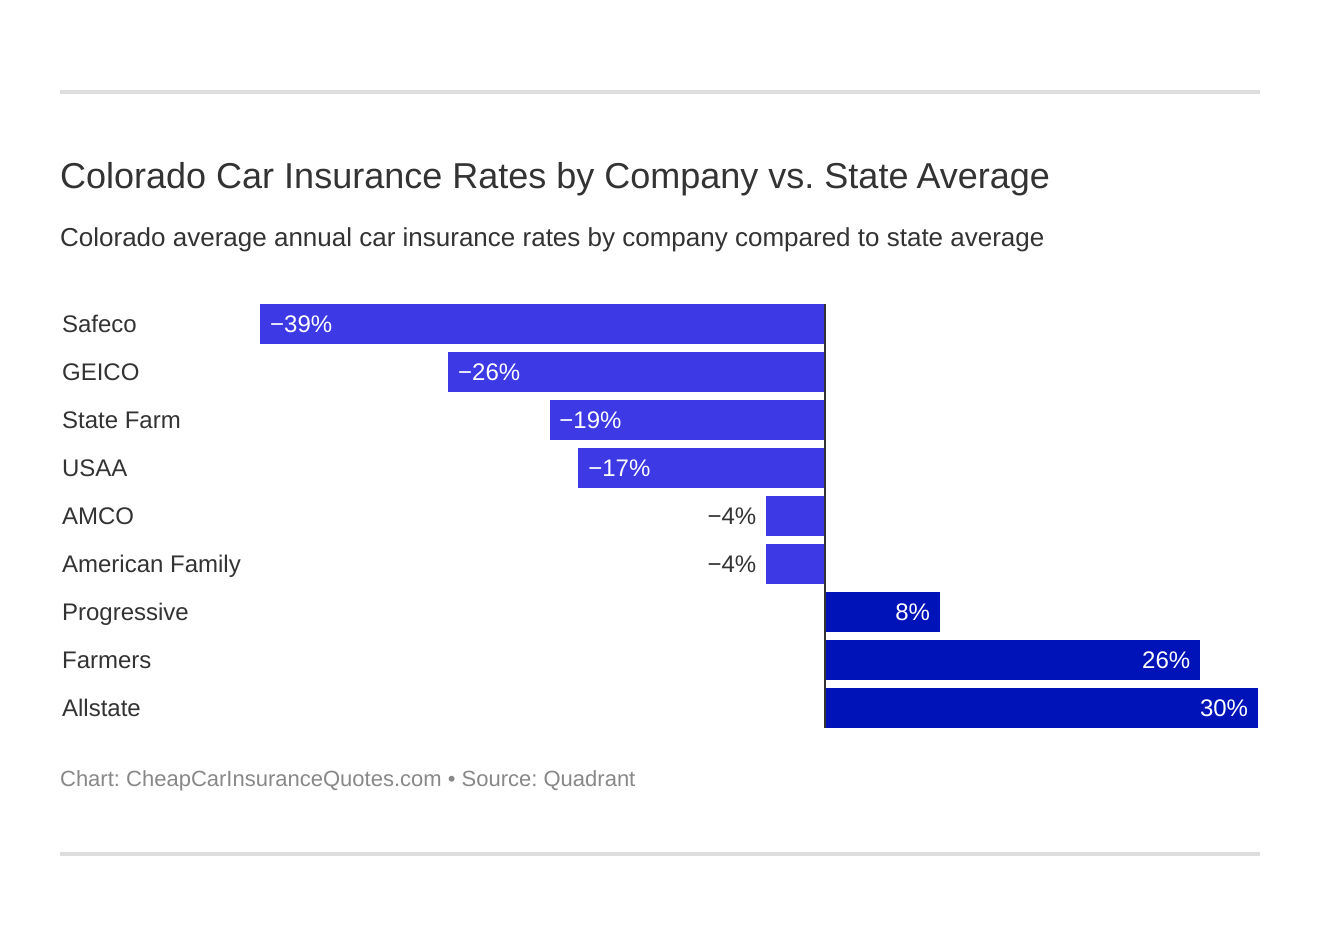 Colorado Car Insurance Rates by Company vs. State Average